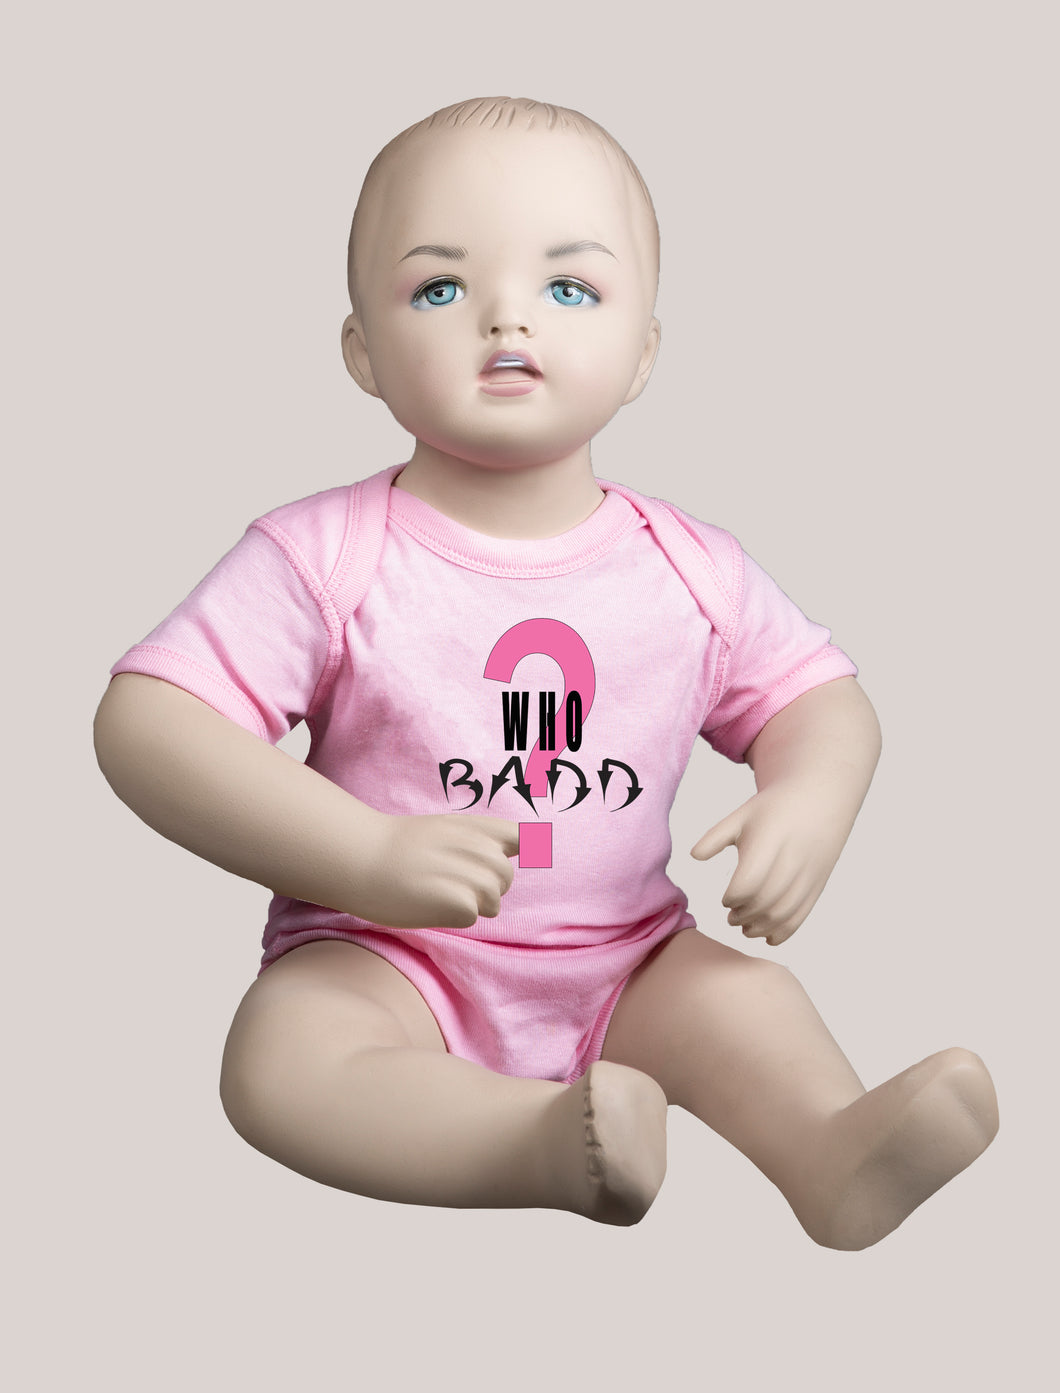 WHO BADD? Short-Sleeve Baby Bodysuit Pink/Pink